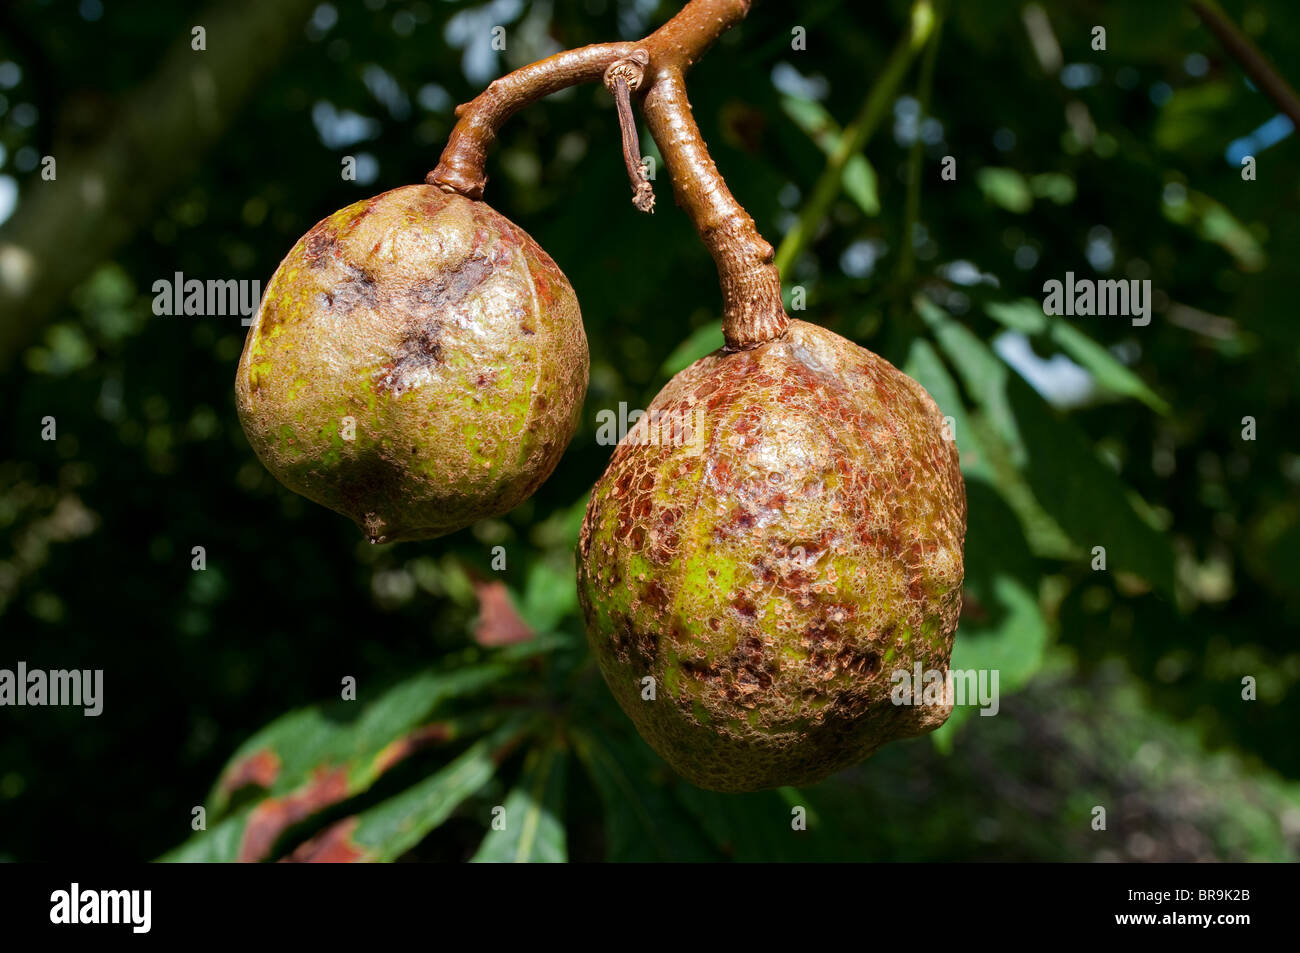 two conkers hanging from a tree - Stock Image